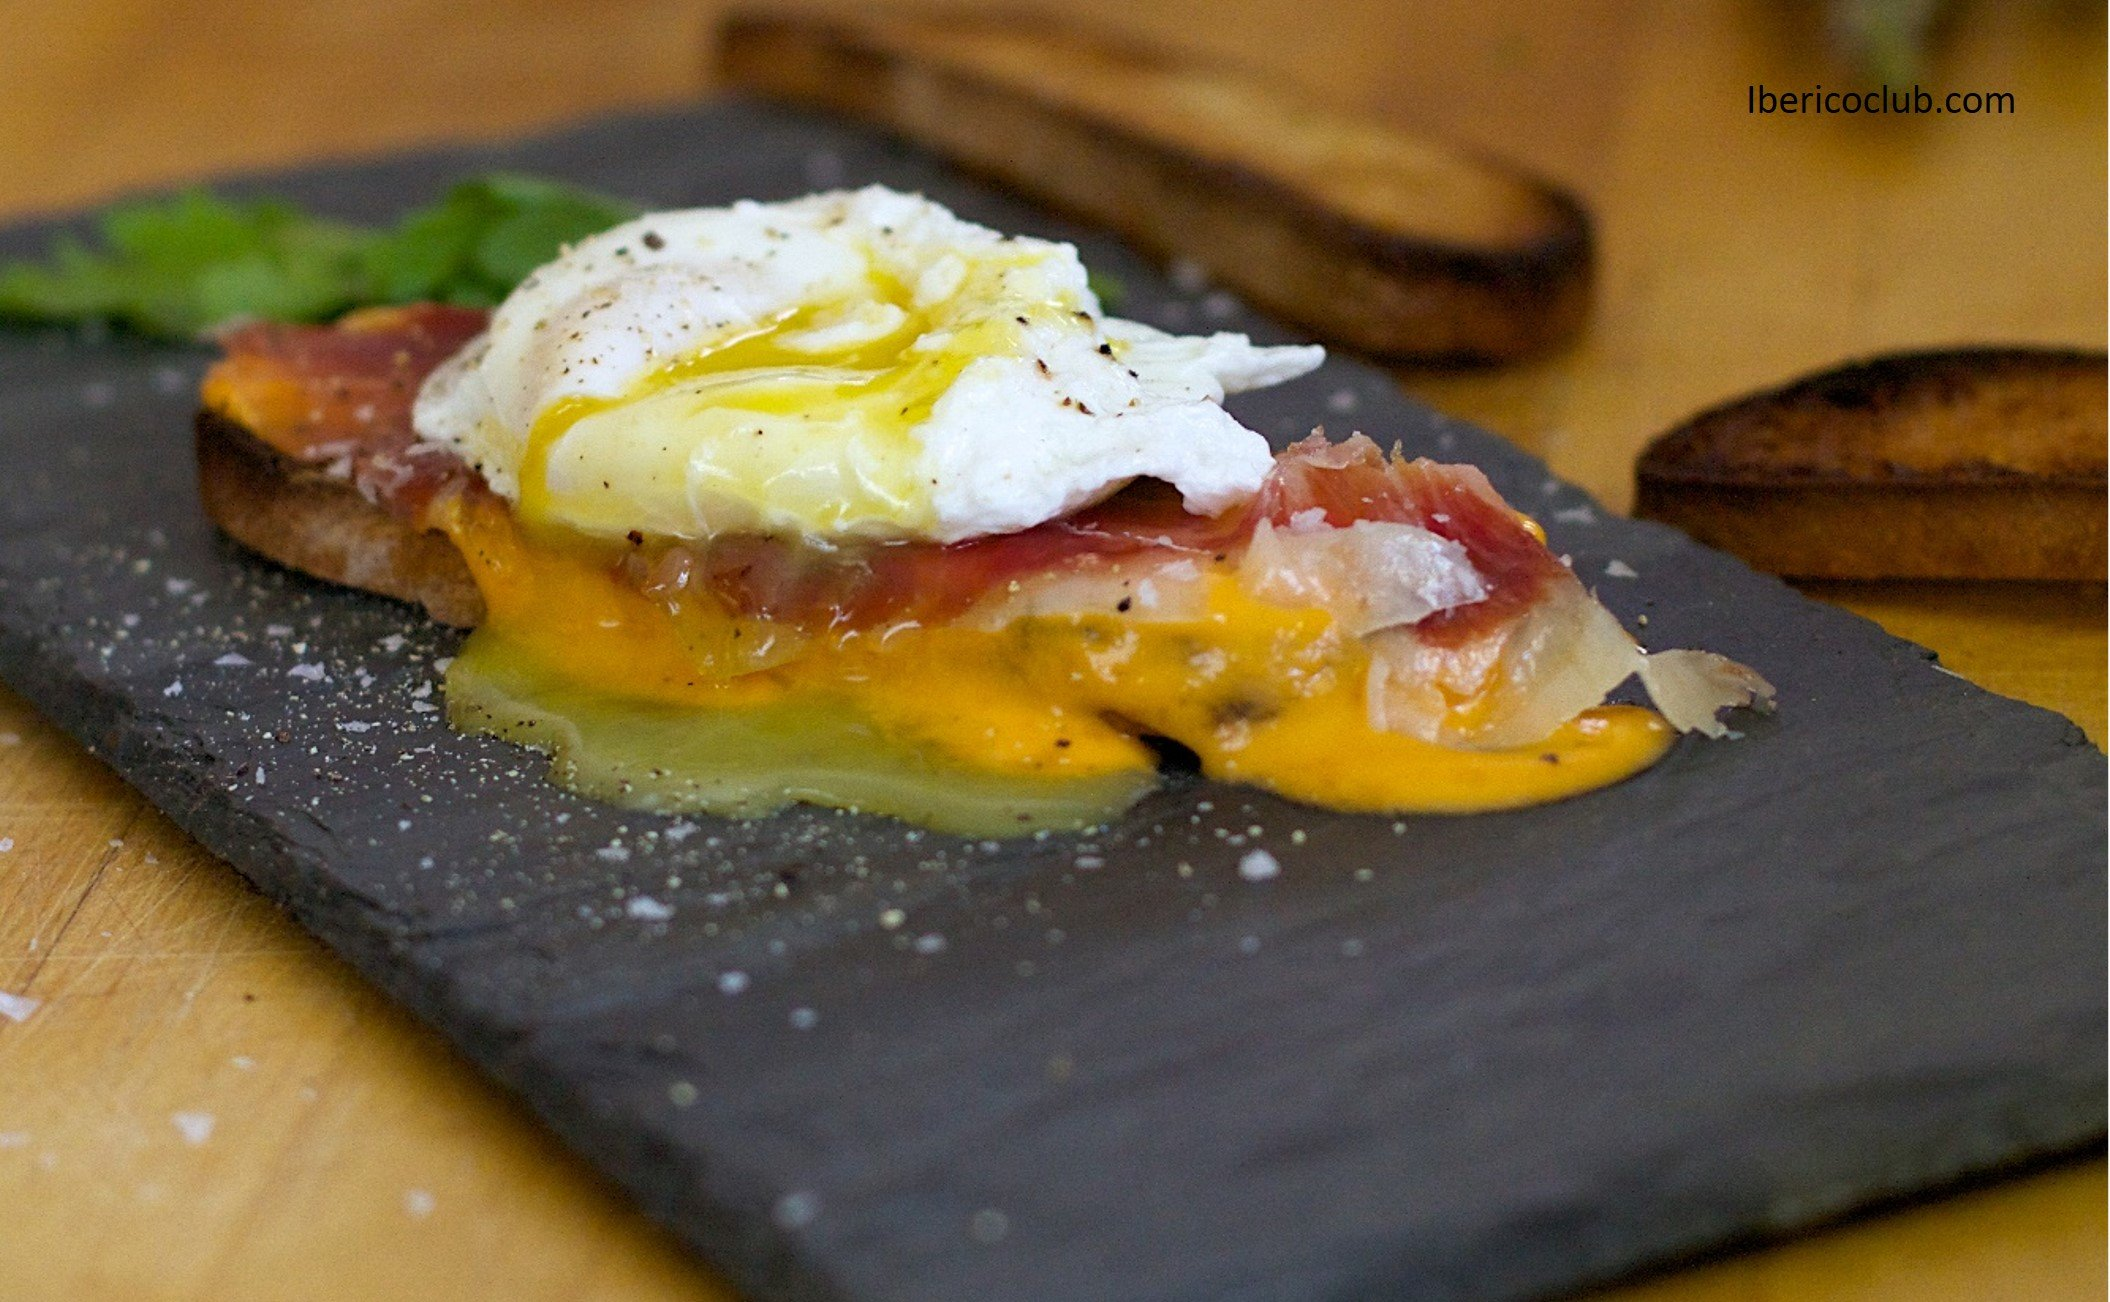 Poached Egg & Jamón Ibérico with Salmorejo Recipe